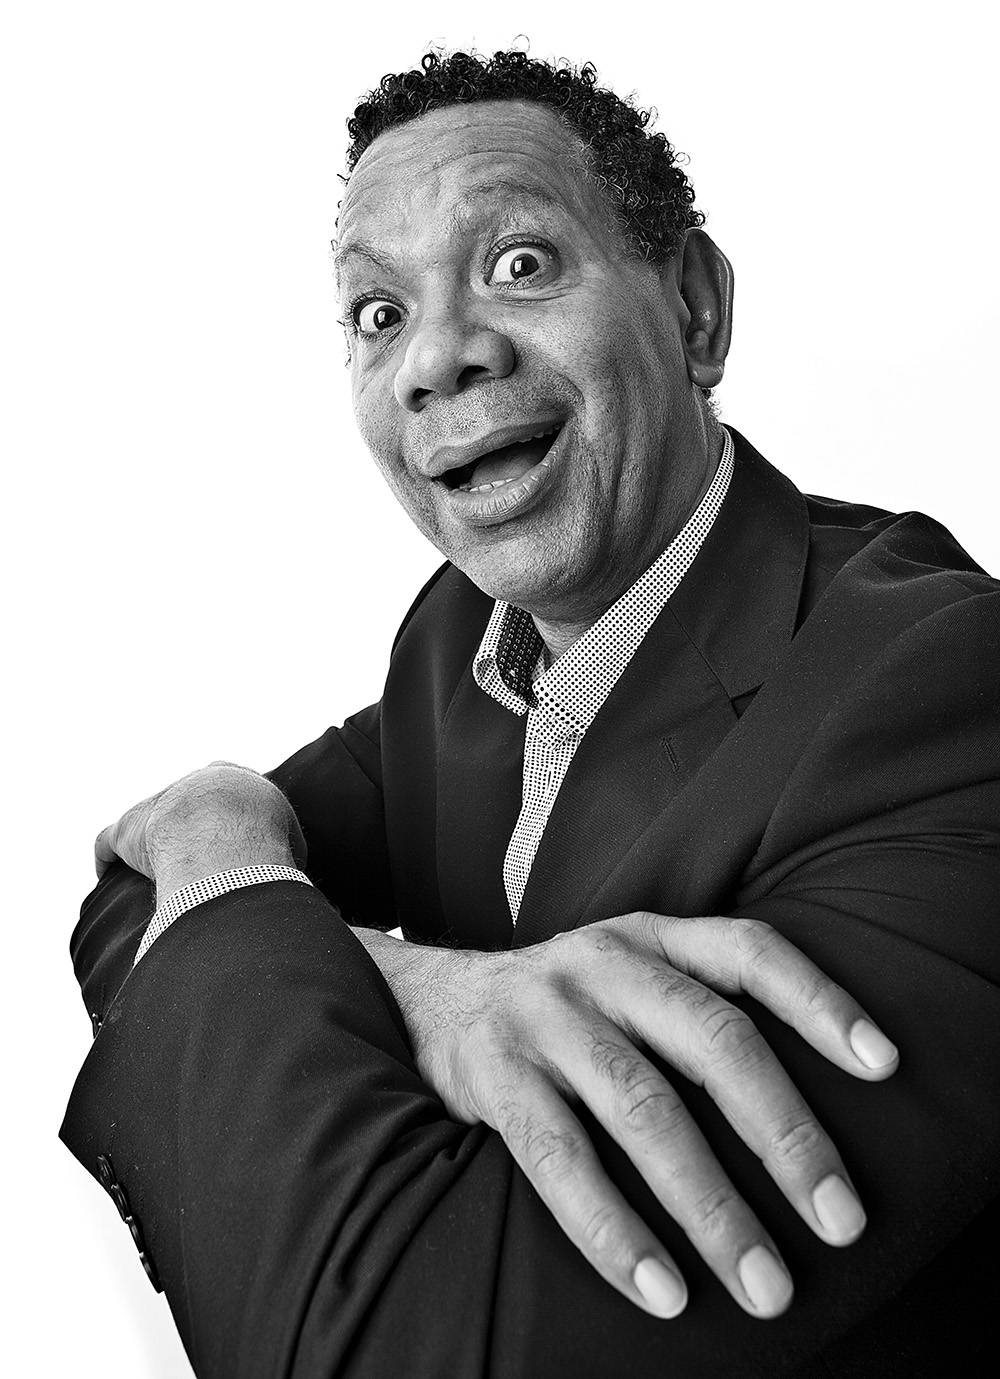 Tony Black and White Portrait of Man with a surprised look © Paul Worpole Photography